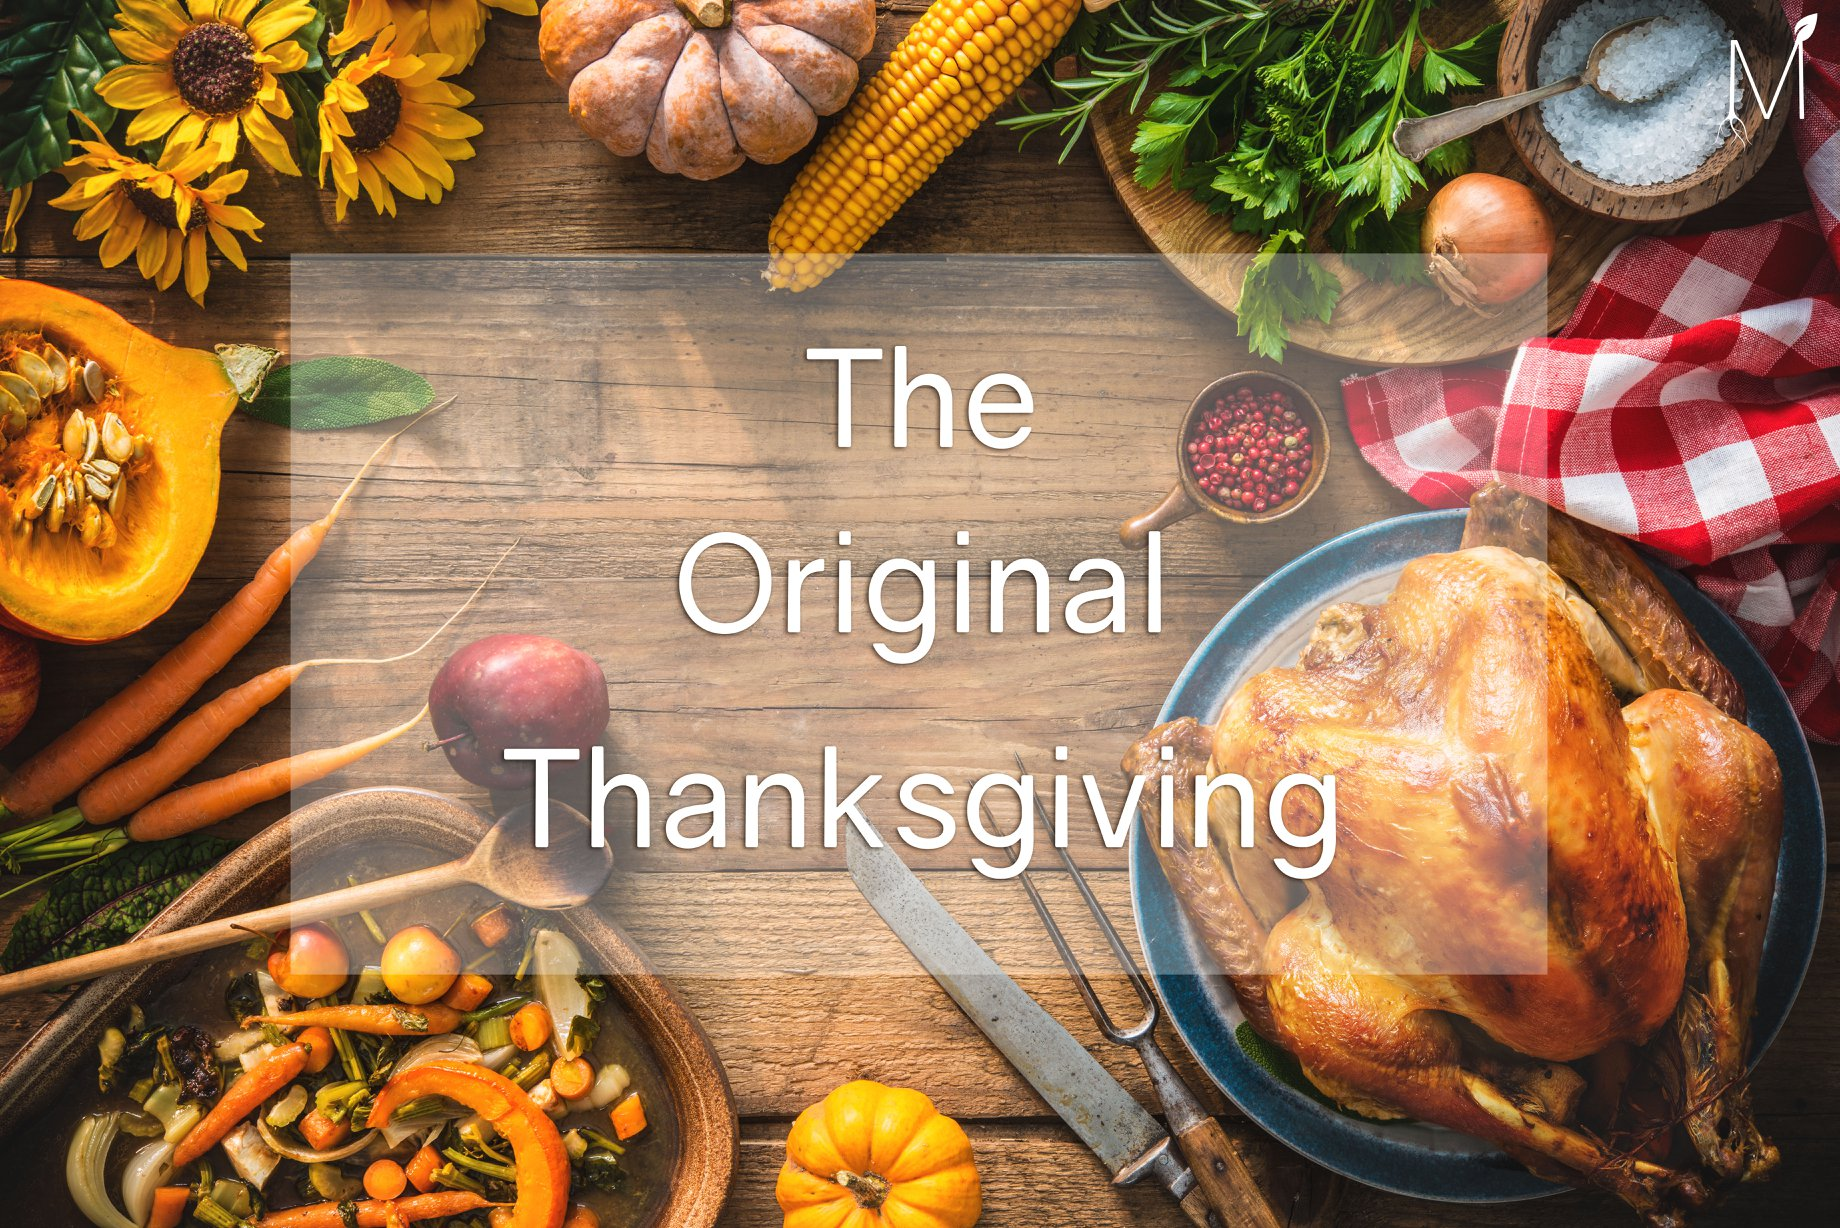 Original Thanksgiving